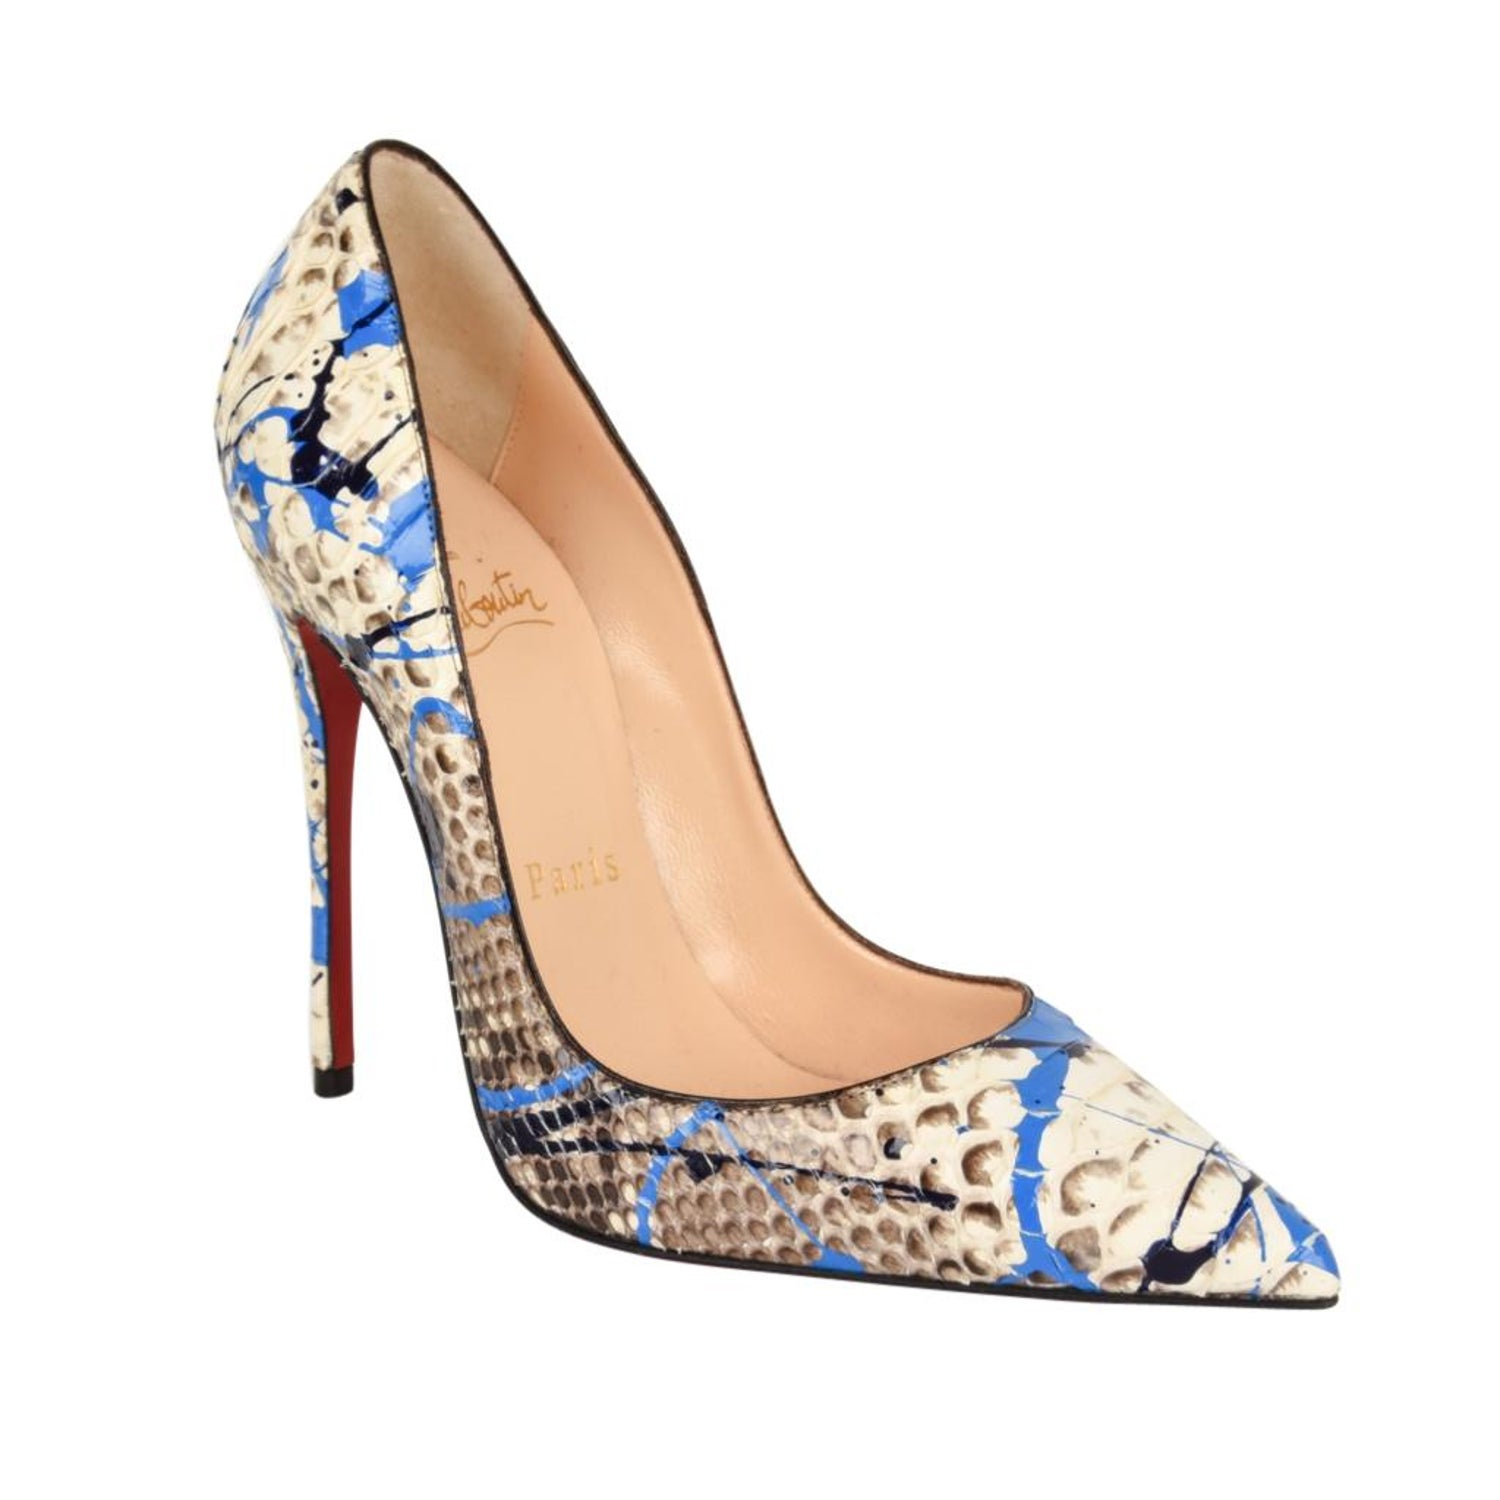 ac4c7f30b33 Christian Louboutin Shoe Python Graffiti Pigalle 115mm 35   5 New For Sale  at 1stdibs